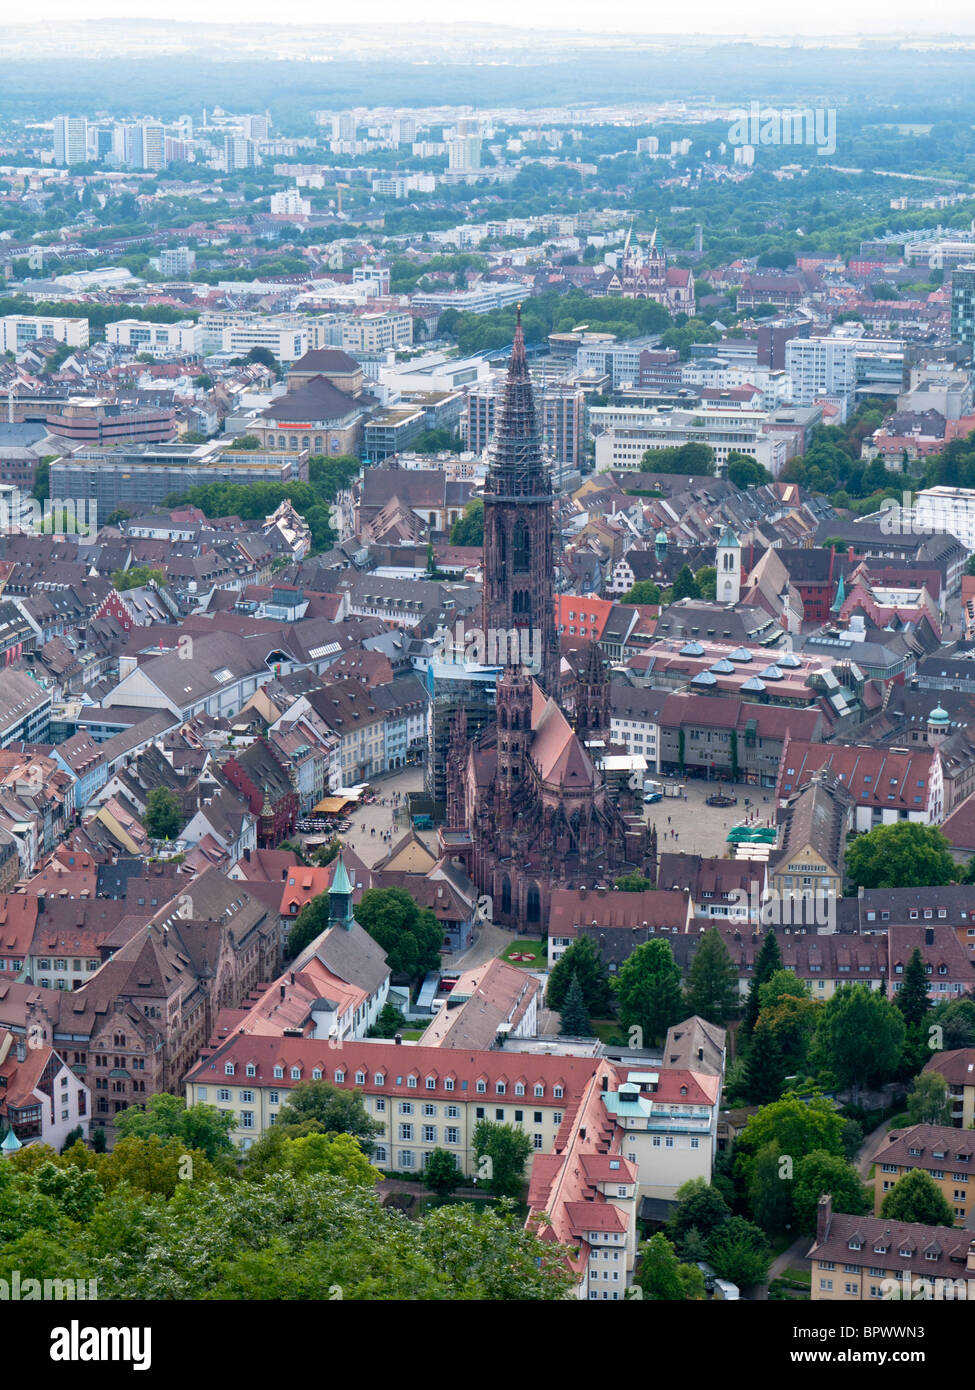 city view of freiburg im breisgau with the freiburg munster cathedral stock photo royalty free. Black Bedroom Furniture Sets. Home Design Ideas